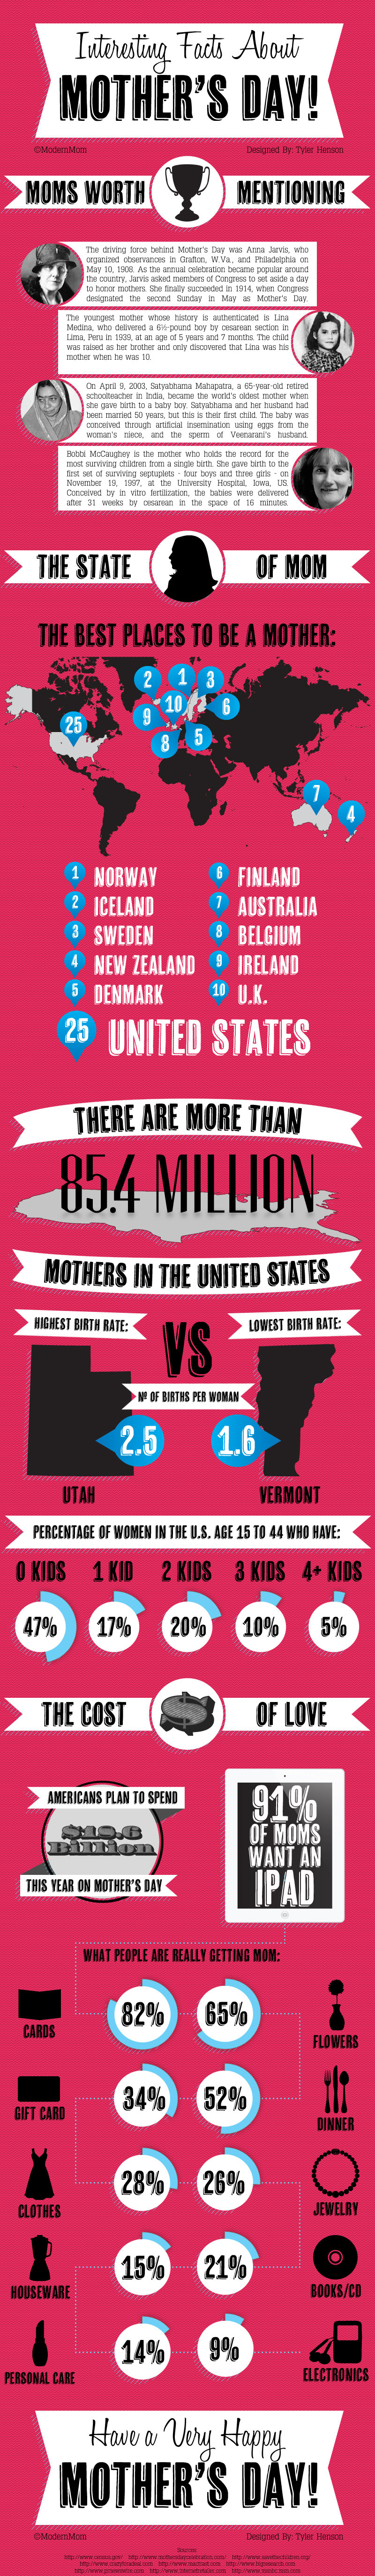 Interesting Facts About Mother's Day